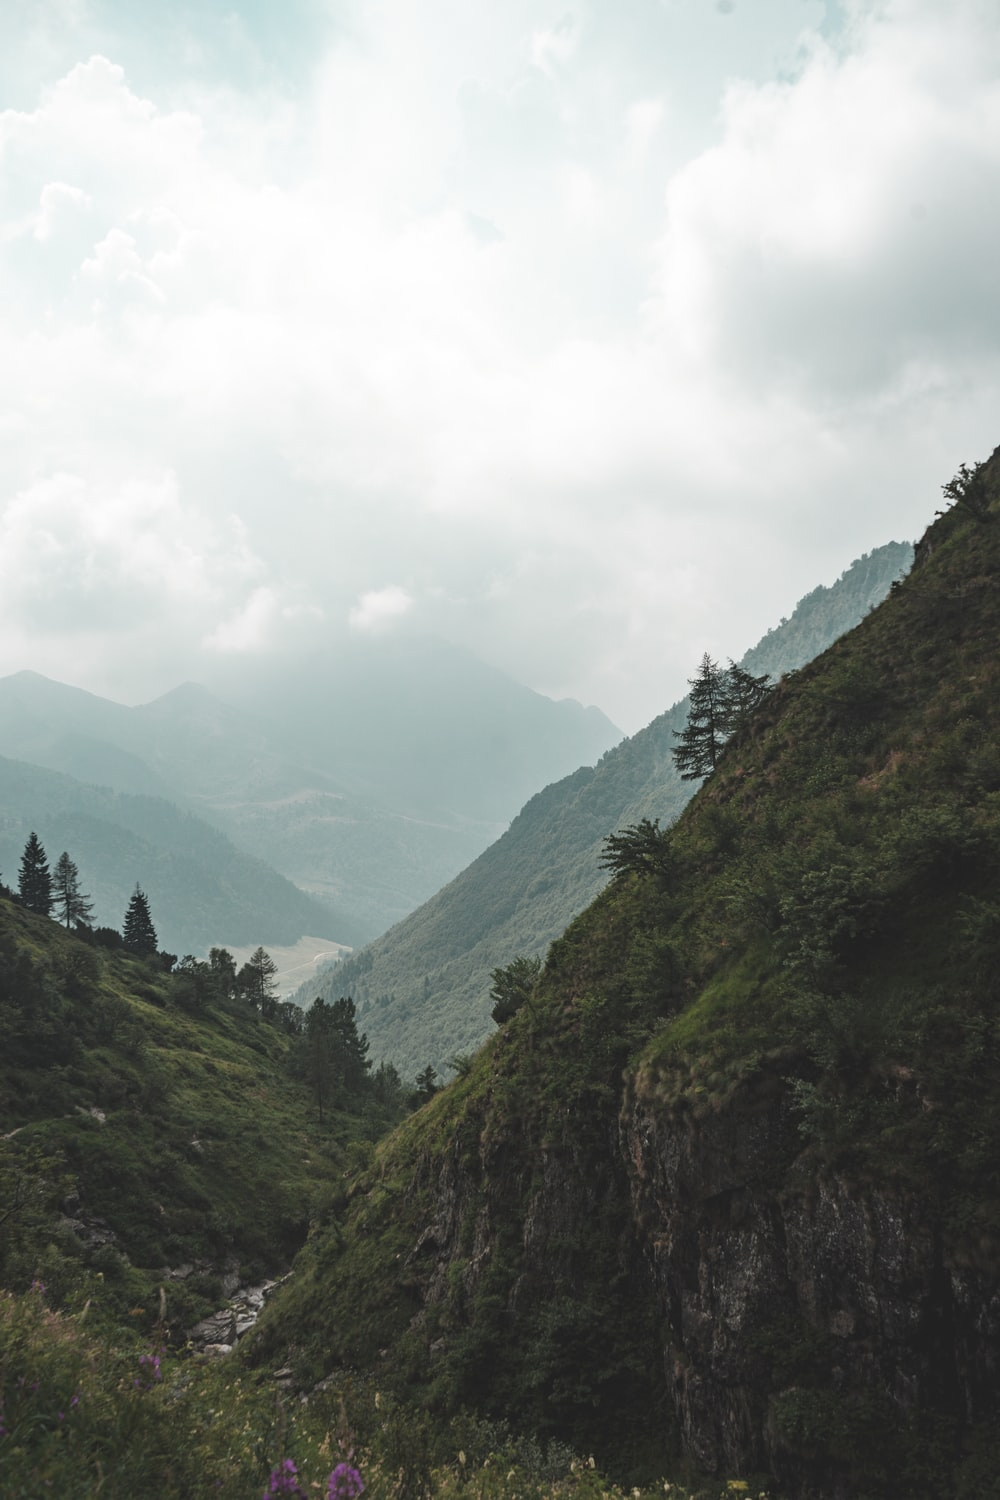 mountains covered with green leafed trees under white clouds